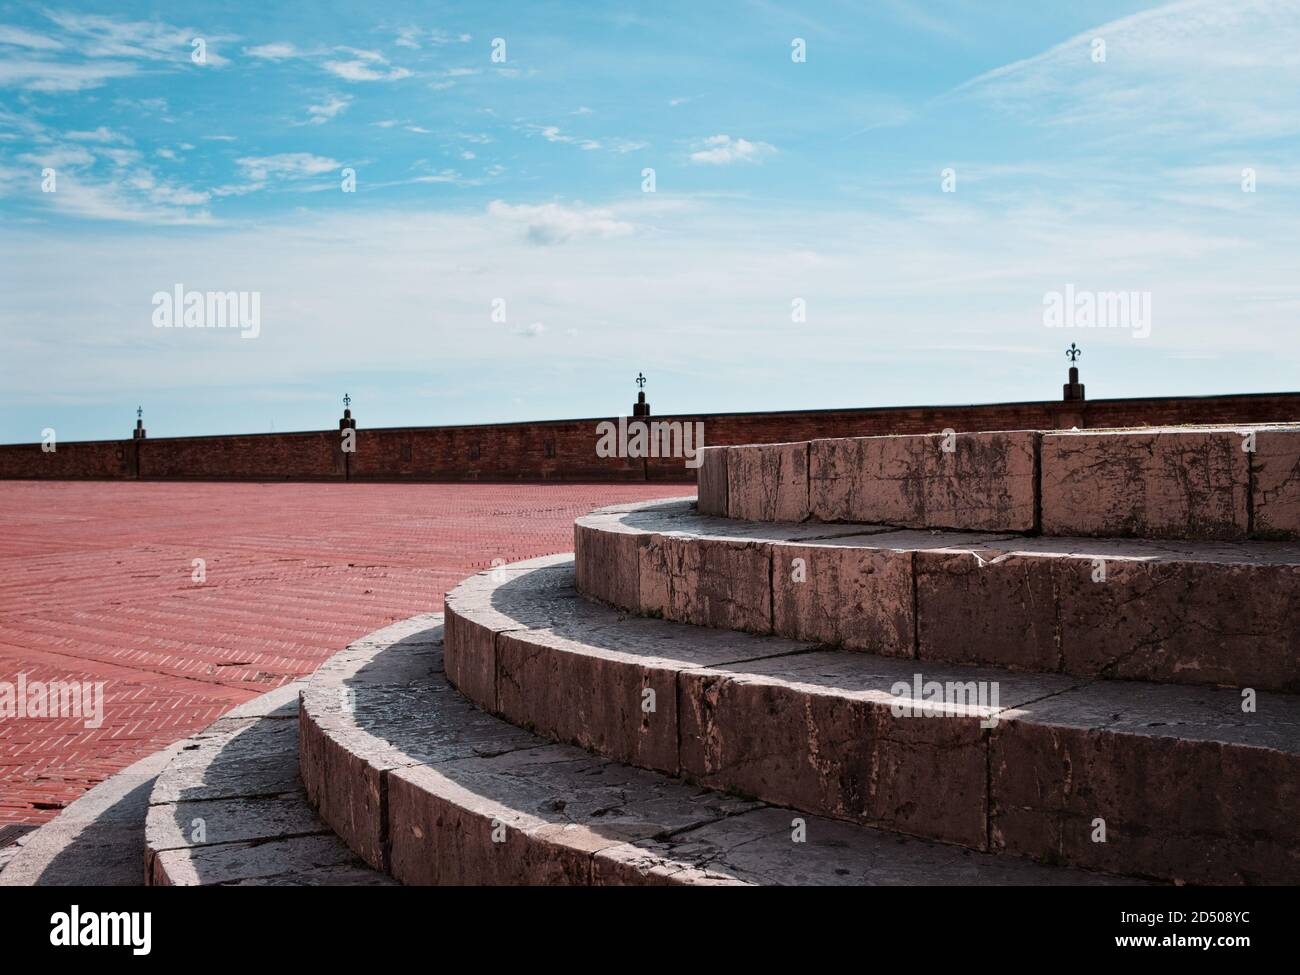 A detail of a circular stone staircase in an empty square (Gubbio, Umbria, Italy) Stock Photo